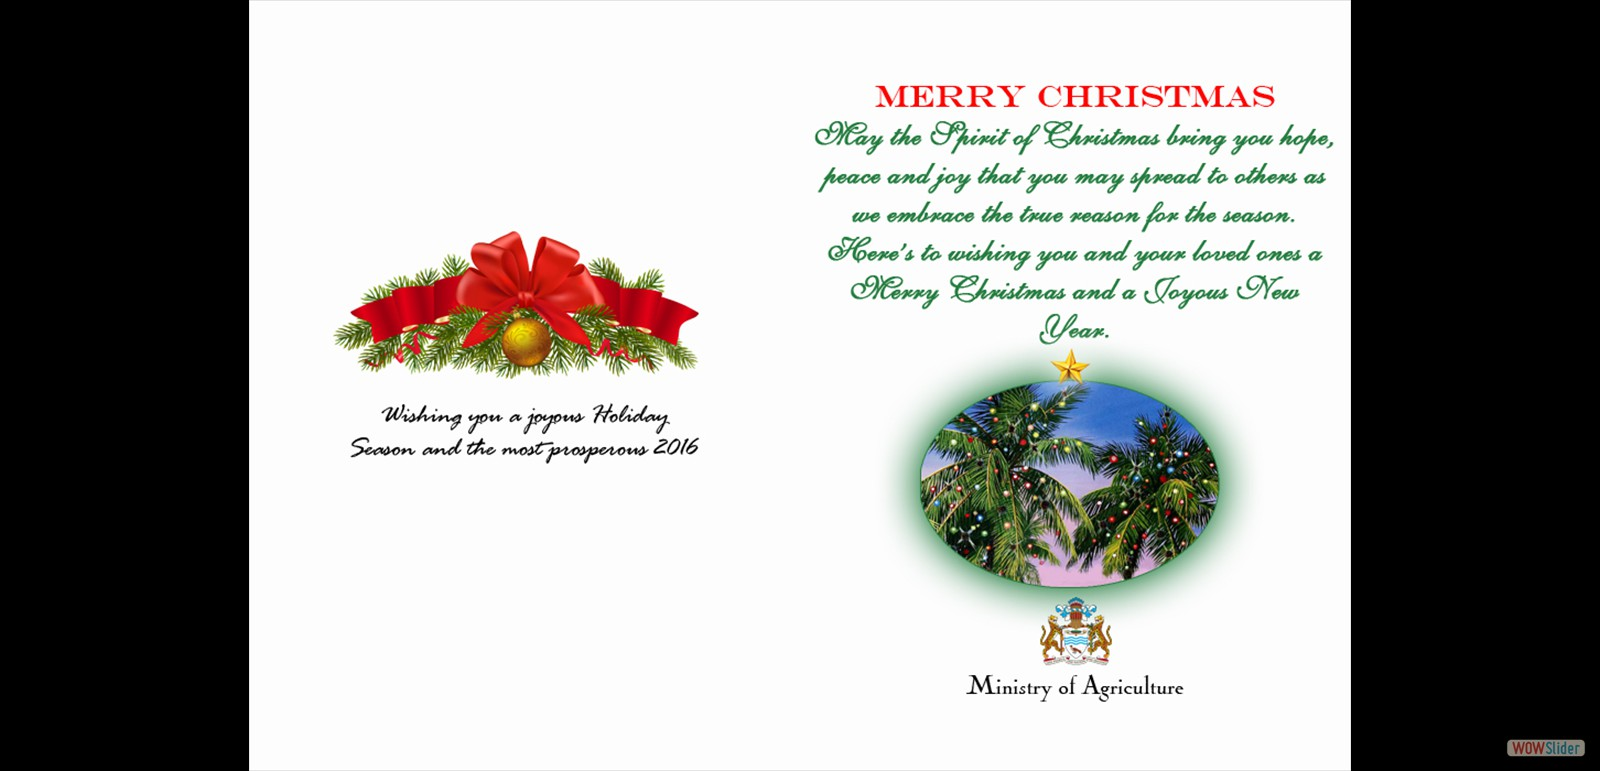 SEASONS GREETINGS from the Ministry of Agriculture